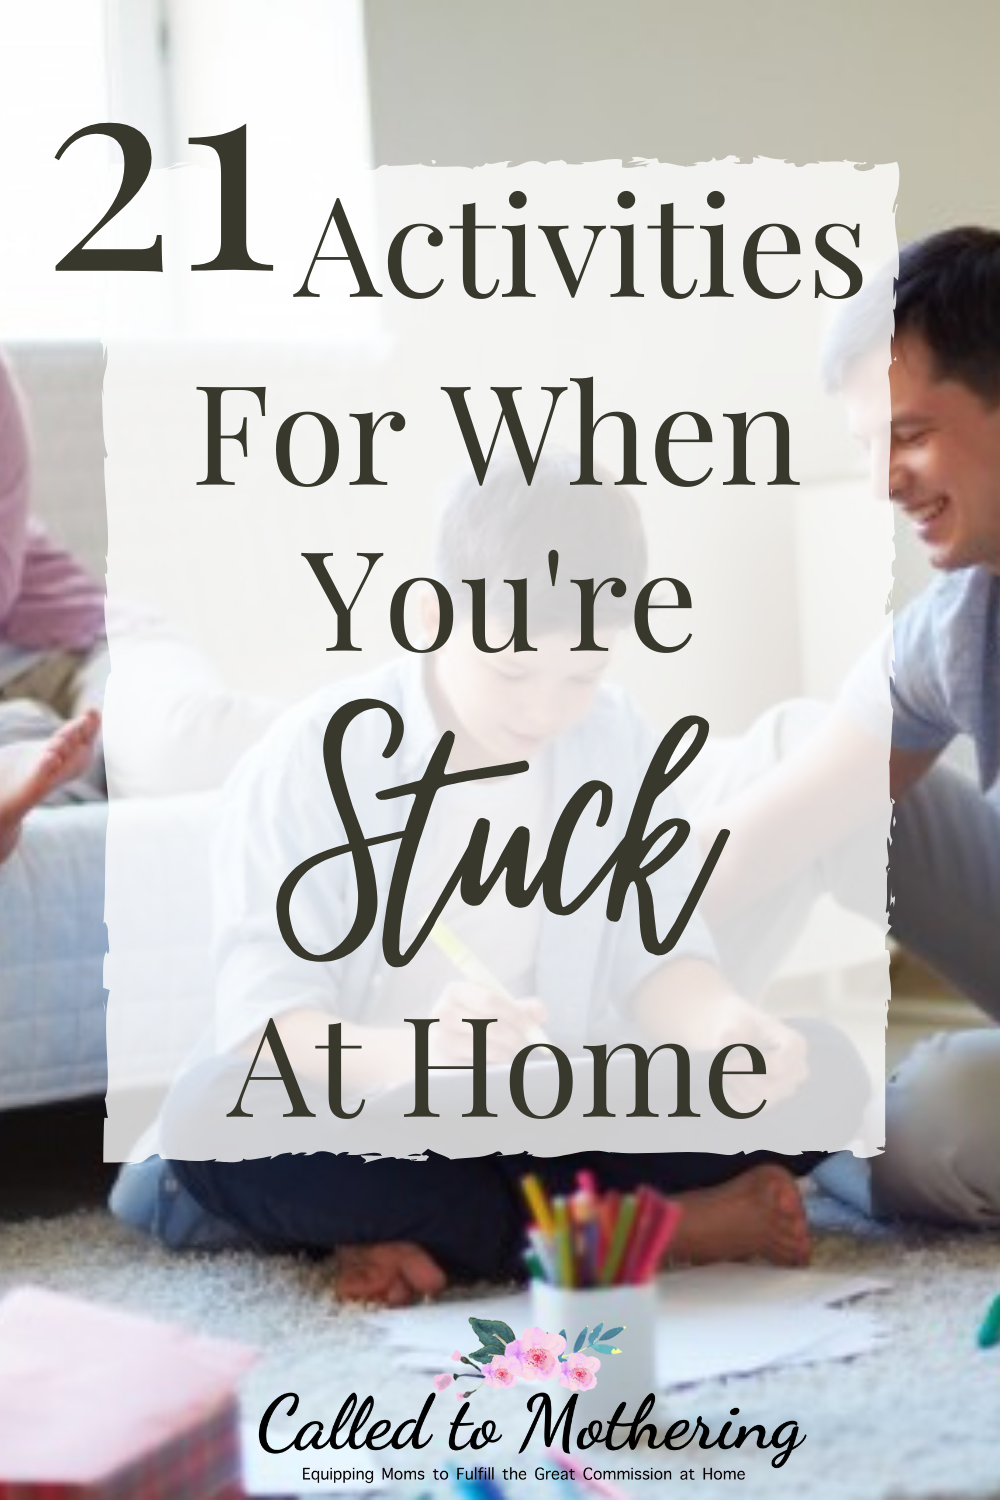 21 fun and frugal activities you can do at home with your kids to keep them busy for hours! #kidsactivities #indooractivitieswithkids #keepingkidsbusy #backyardactivities